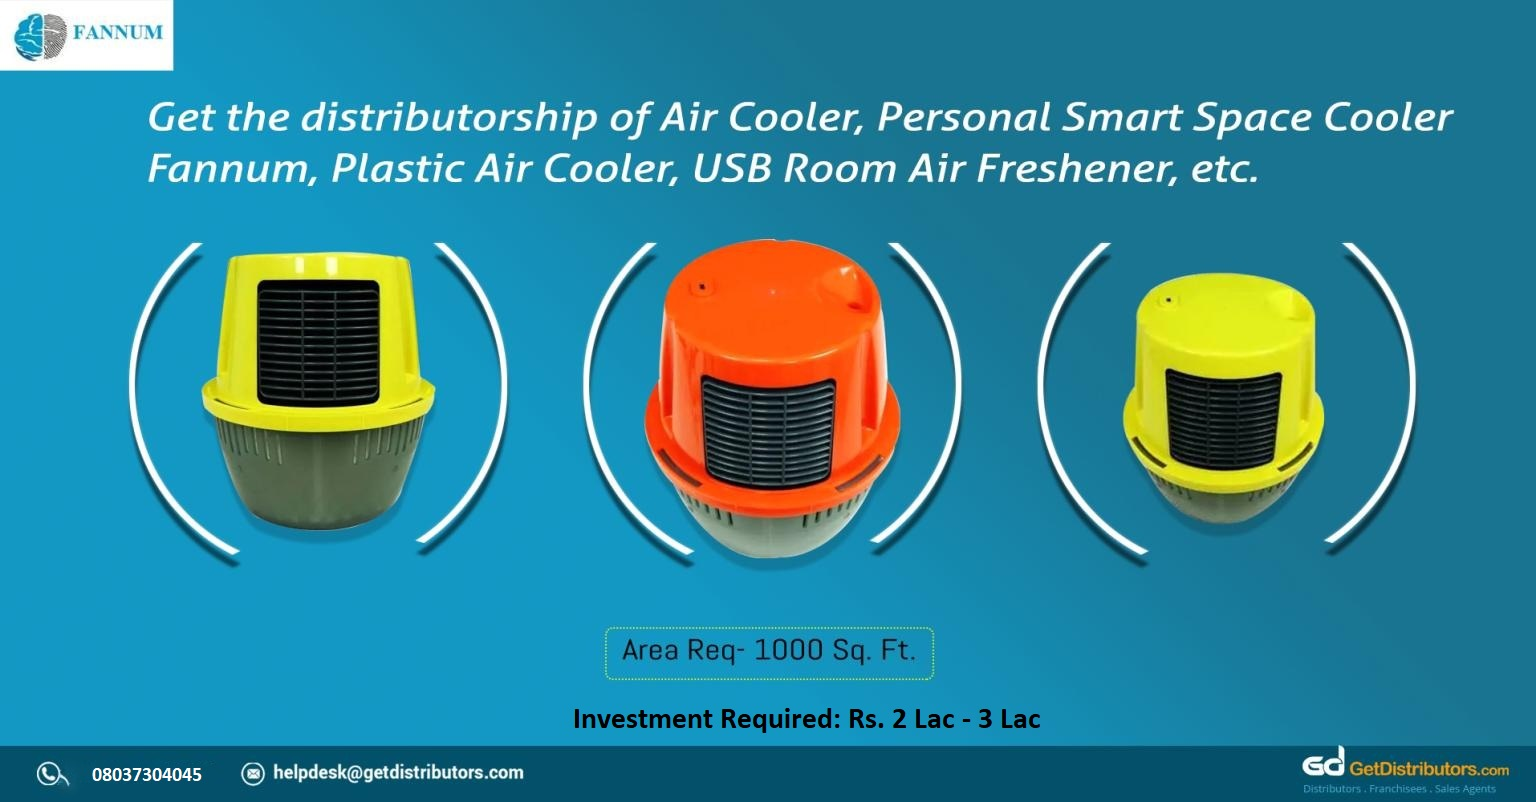 Highly efficient air cooler at nominal rates